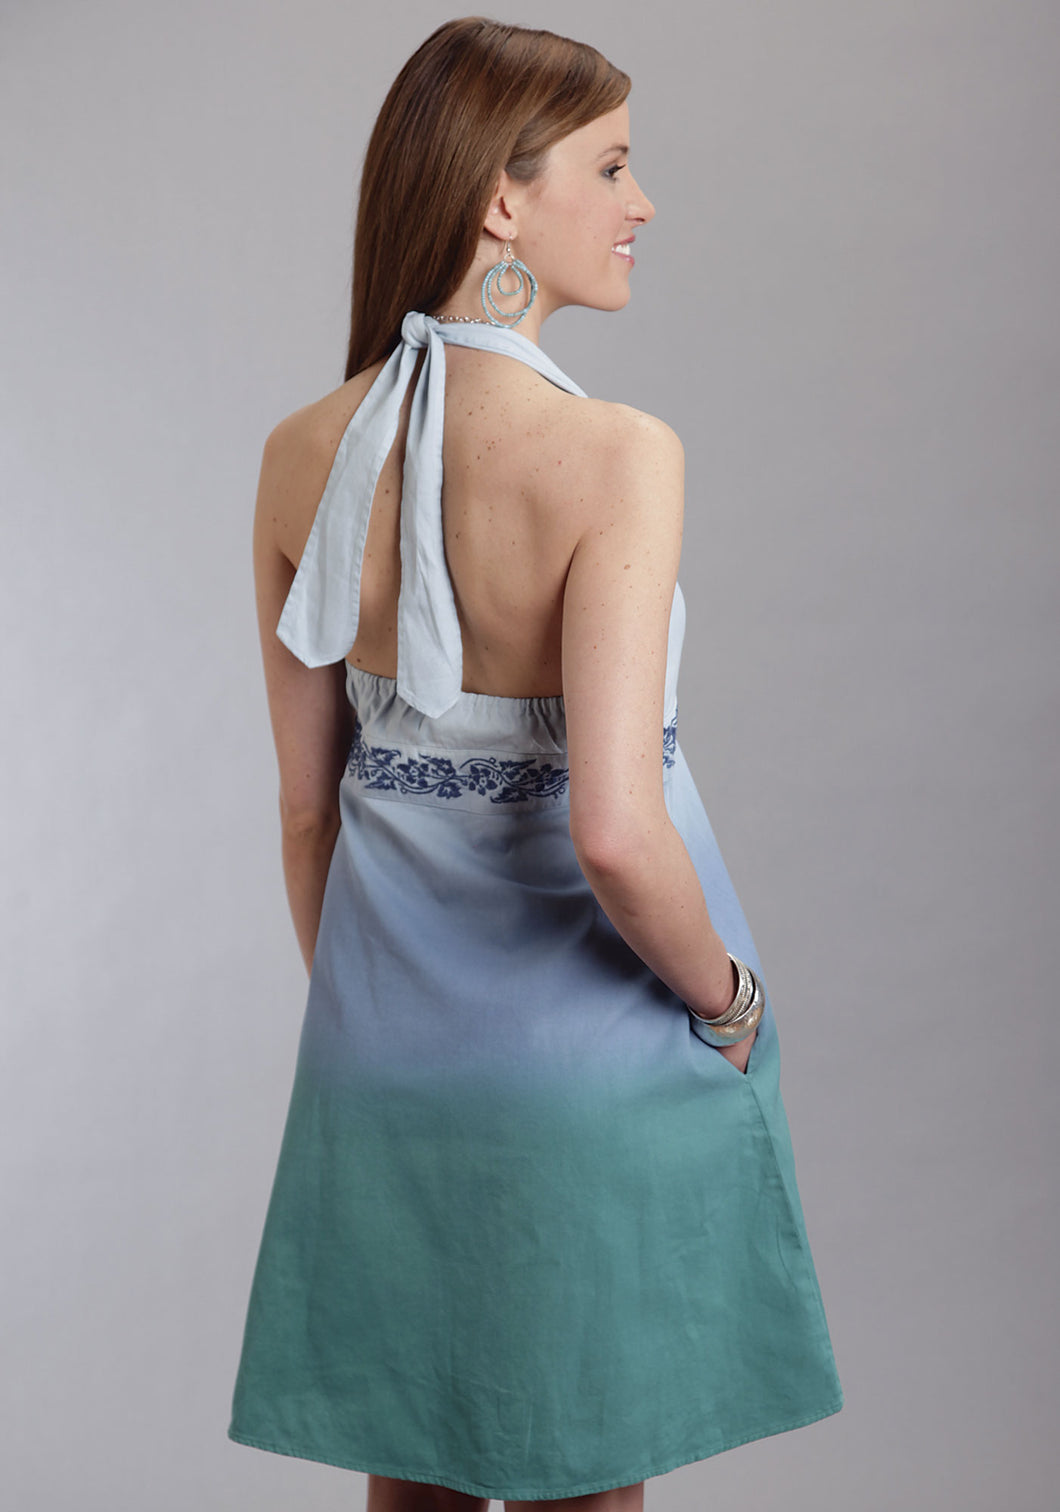 Stetson Ladies Collection- Spring Ii Stetson Ladies Sleeveless Dress 8977 Dip Dye Denim Halter Dress